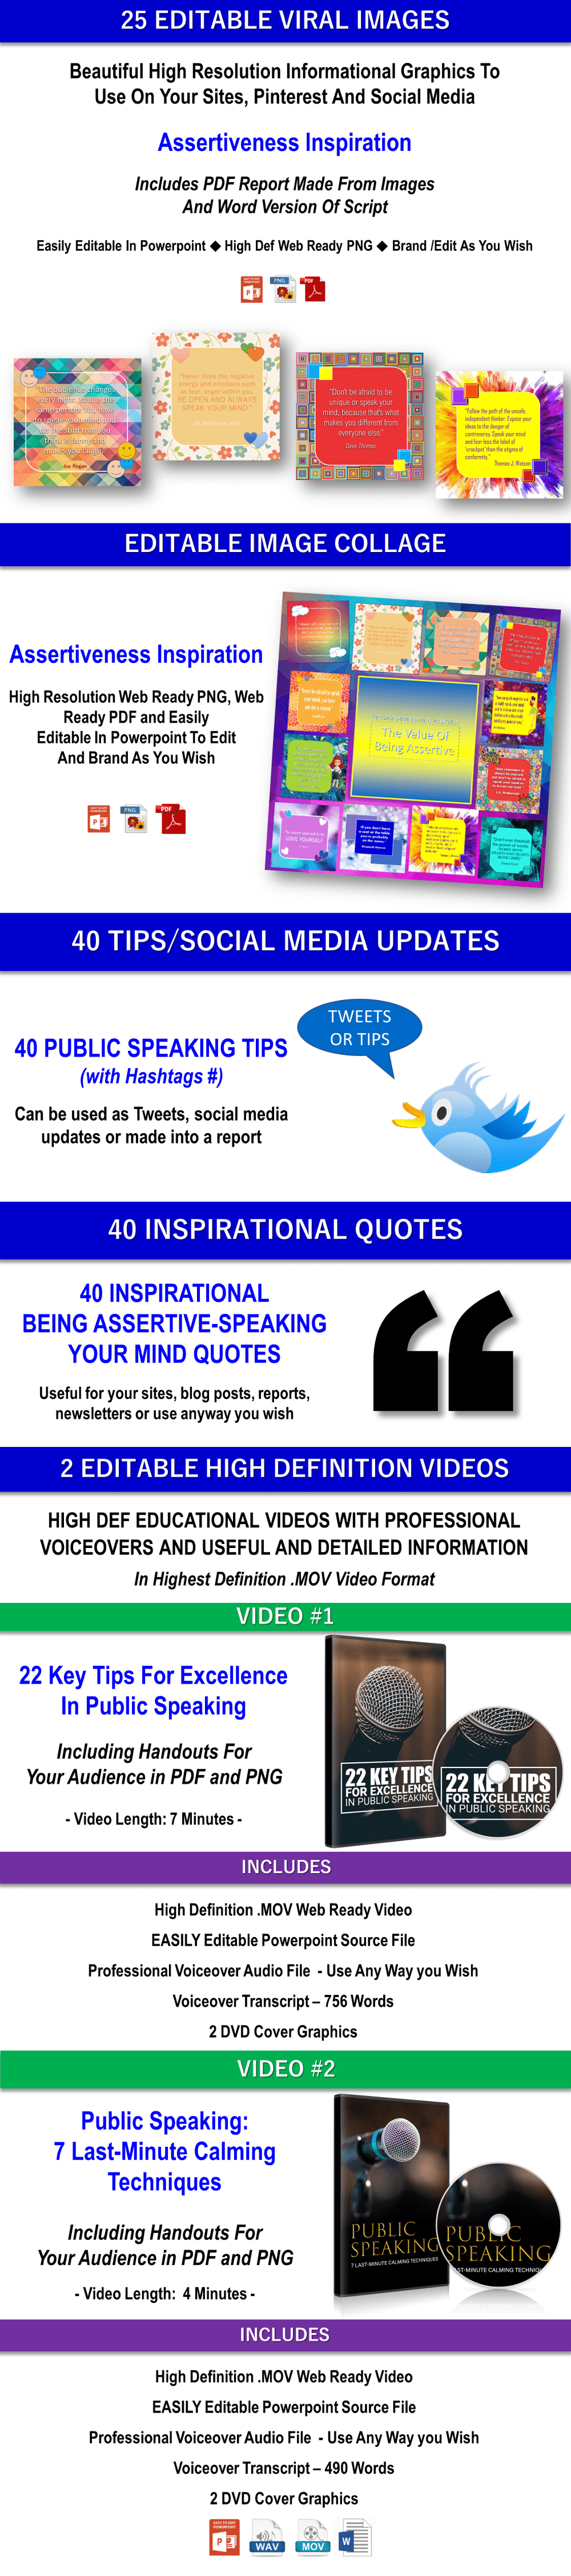 Public Speaking and Communication Content with PLR Rights